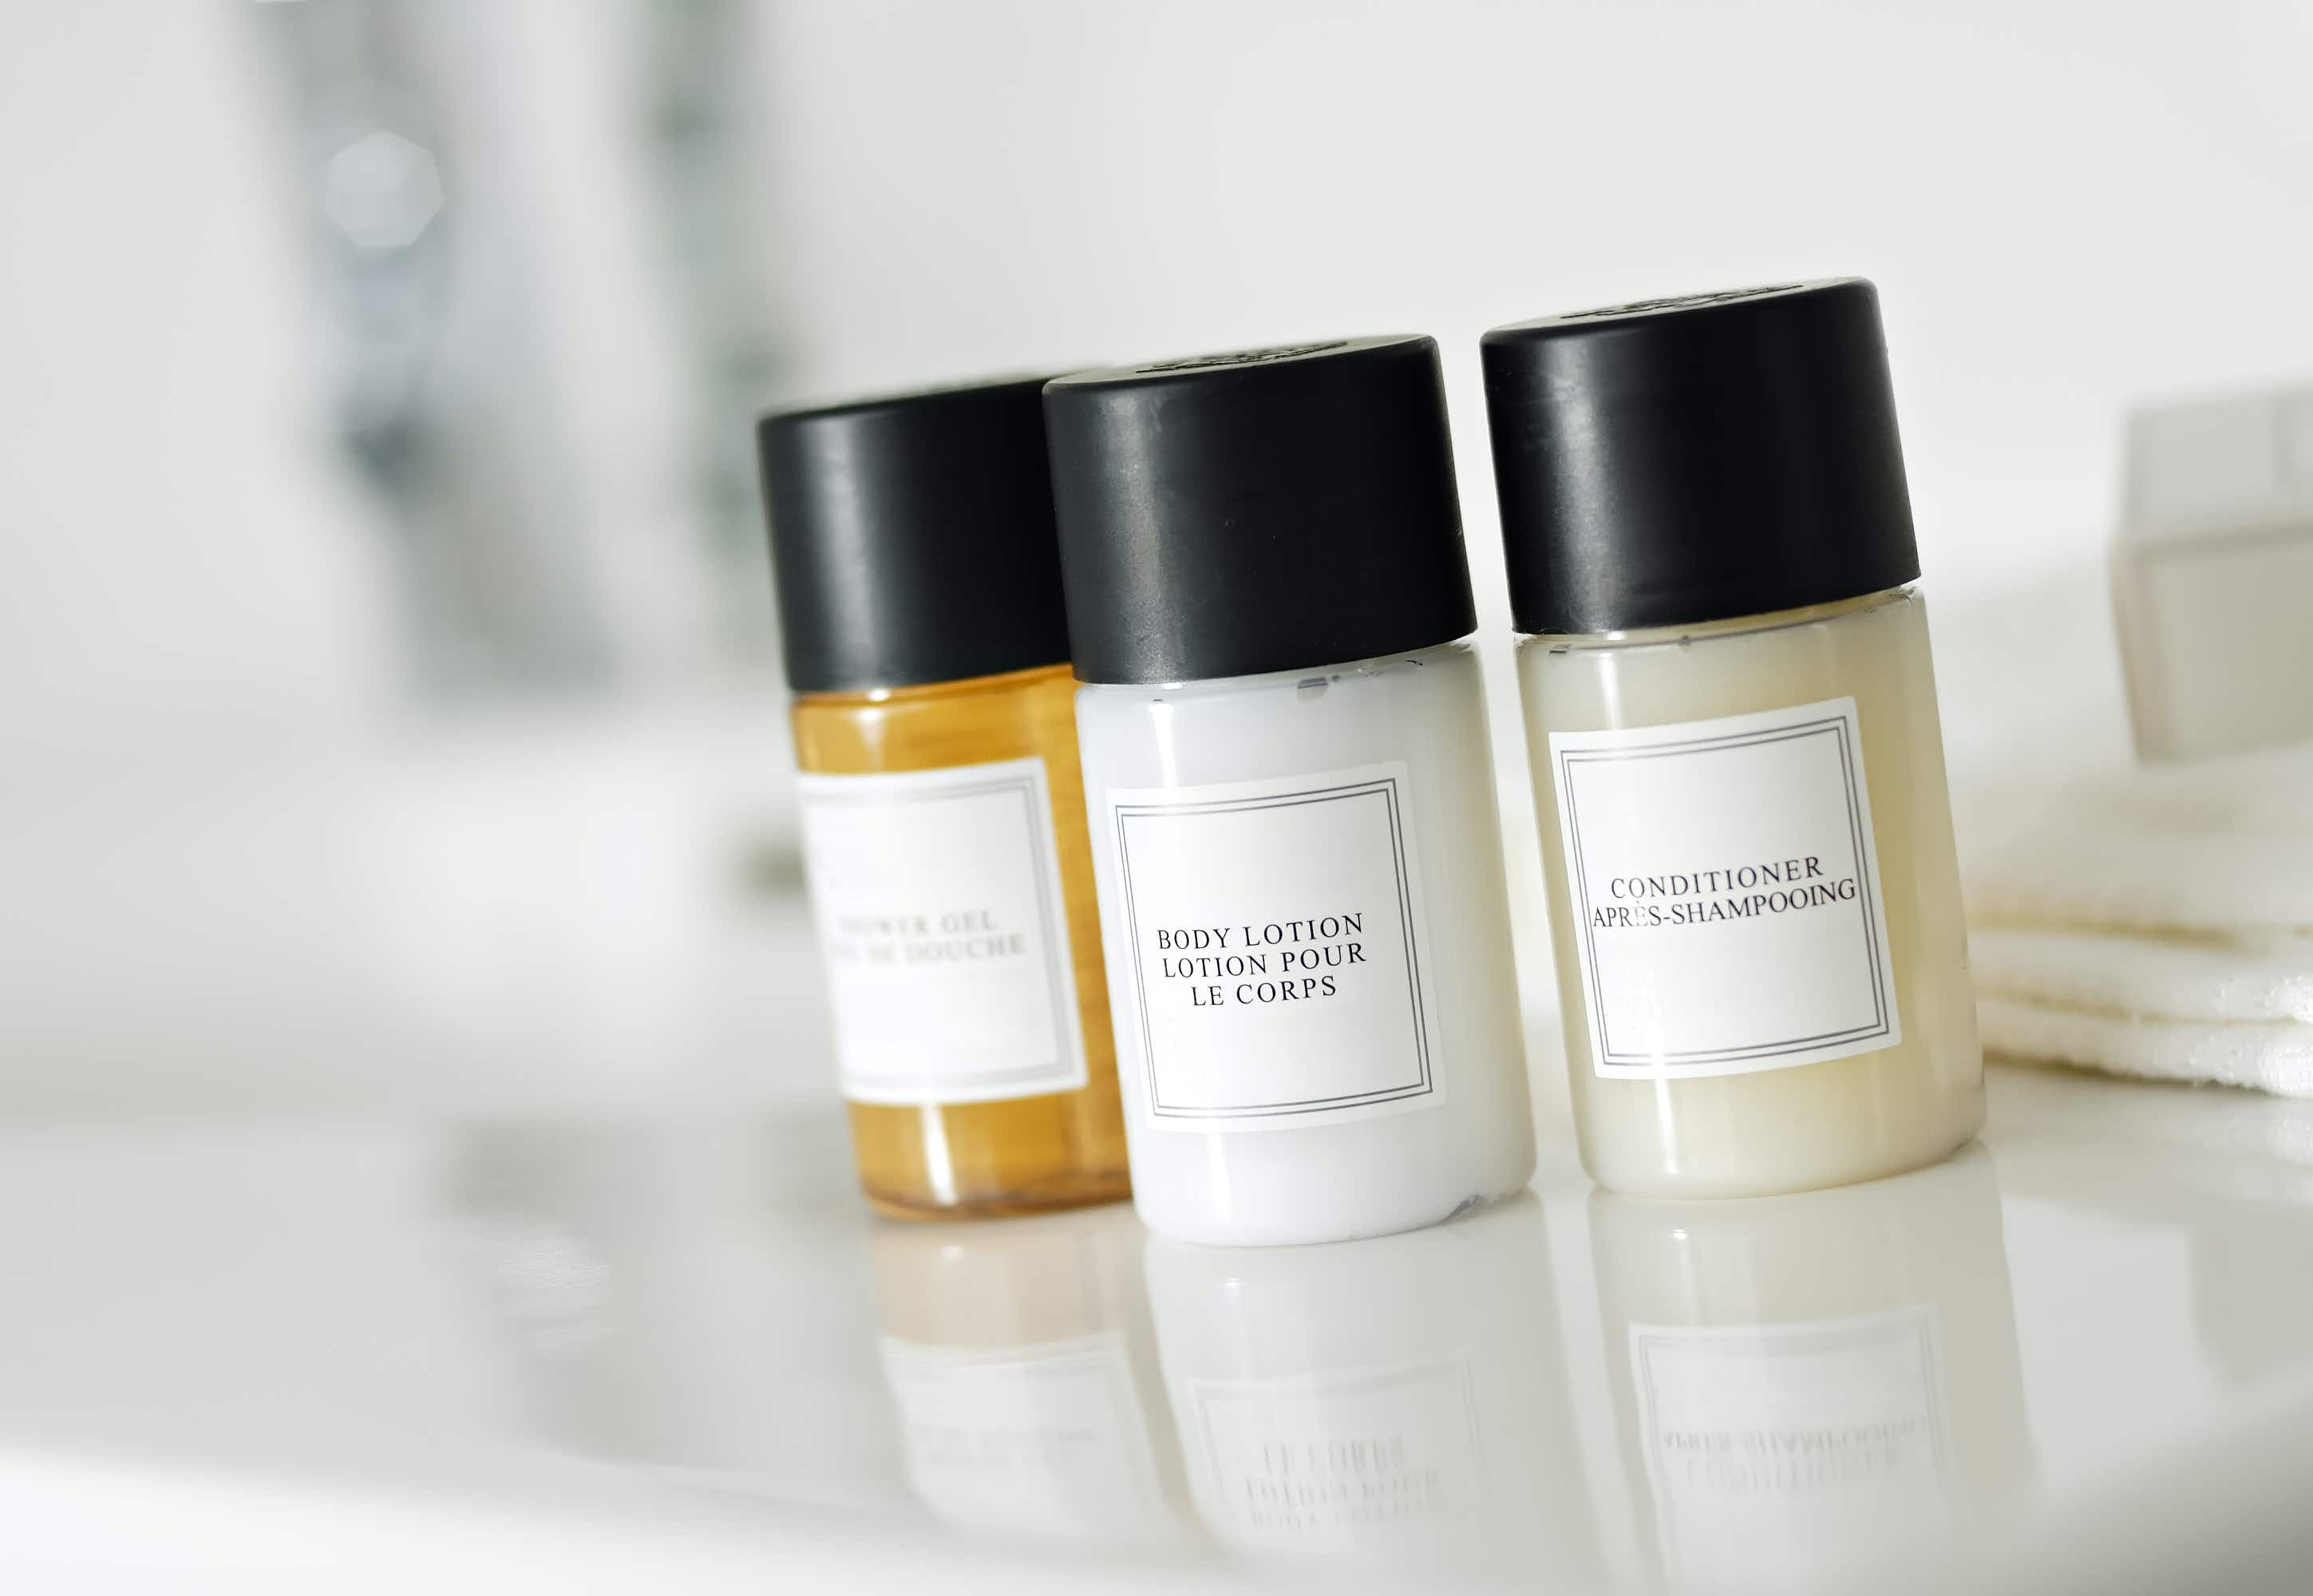 New York proposes a blanket ban on mini toiletries in hotels and guest rooms. Image by Getty